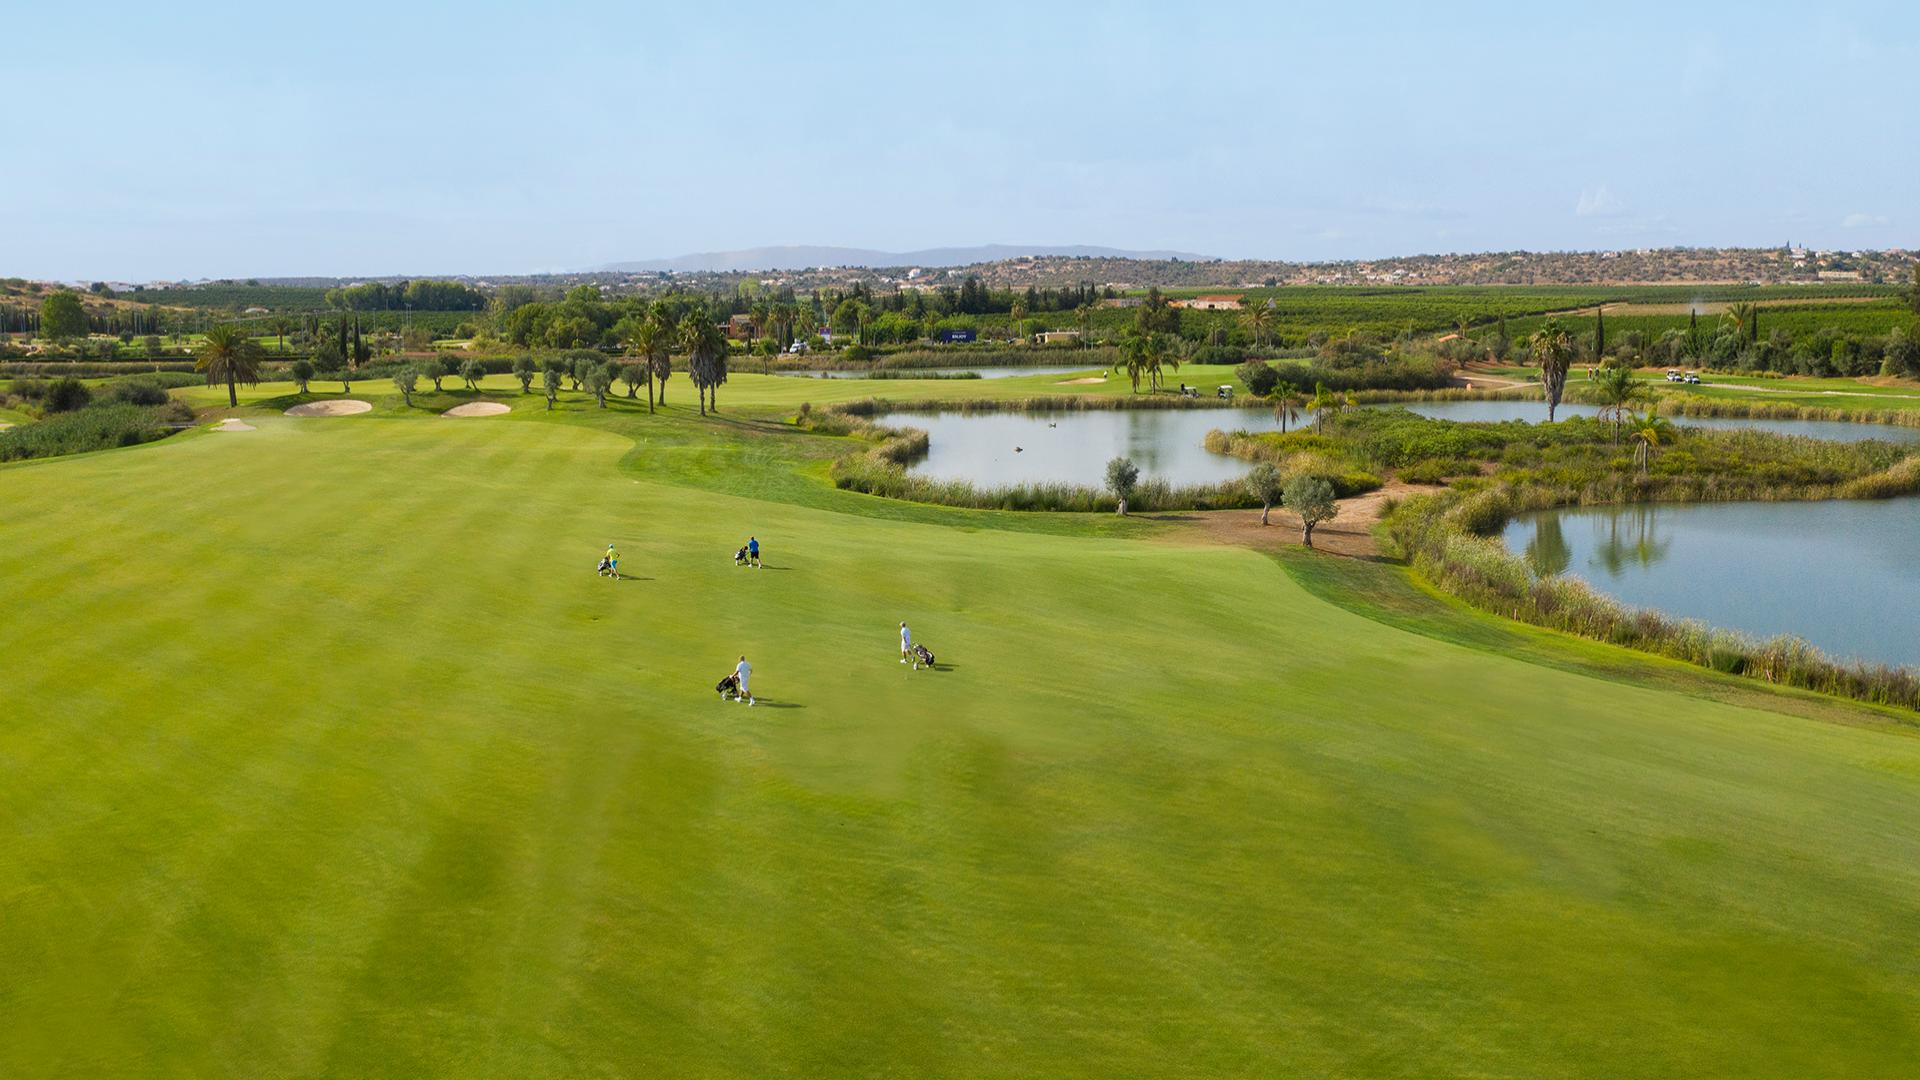 Golfshake.com visits Amendoeira Golf Resort